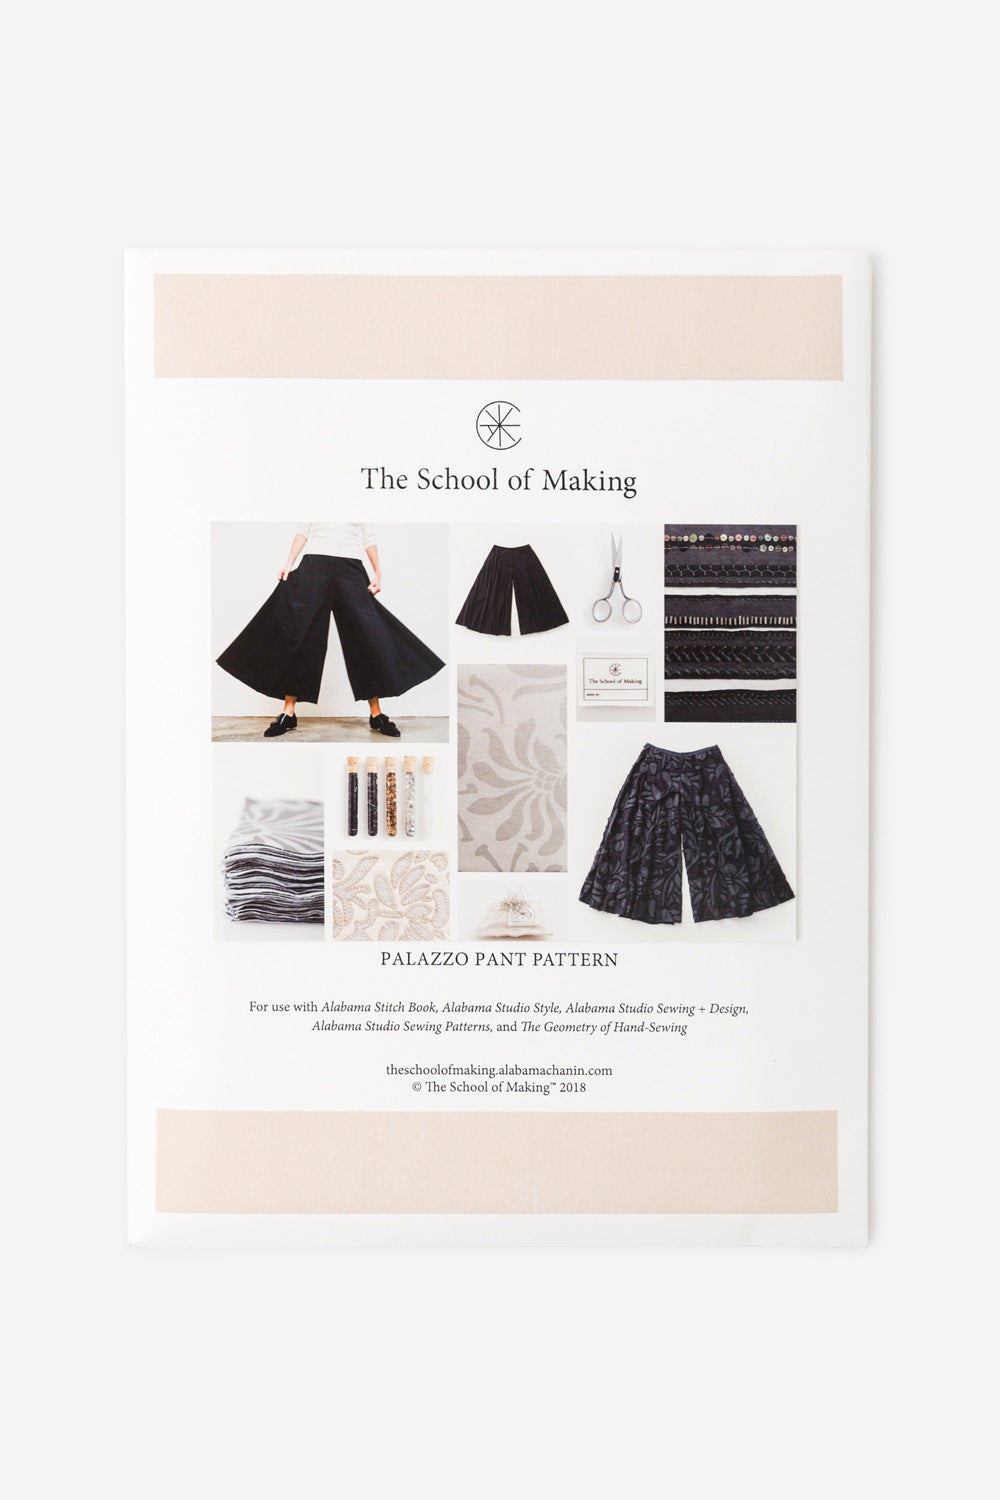 The School of Making The Palazzo Pant Pattern Women's DIY Clothing Pattern for Hand-Sewn Wide Leg Crop Pant